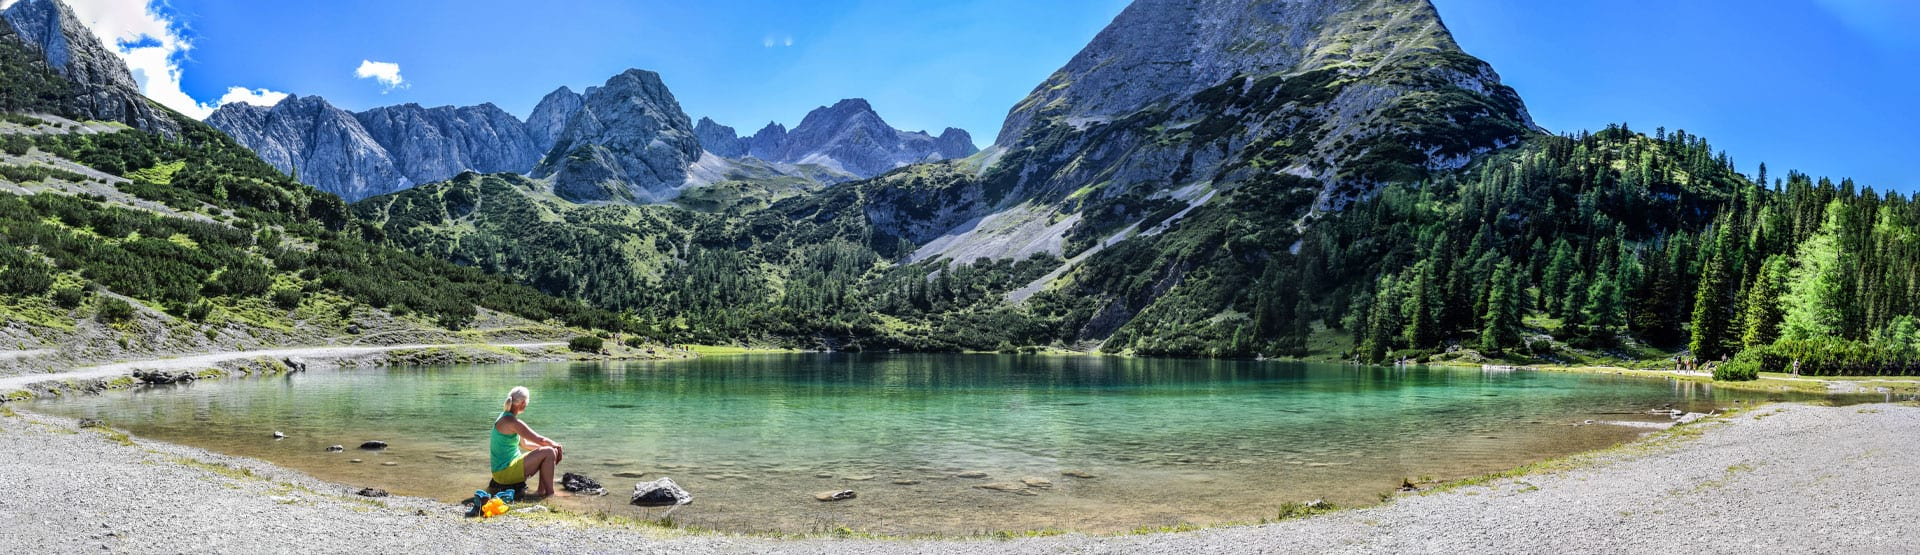 Hiking and Trekking in the Austrian Alps